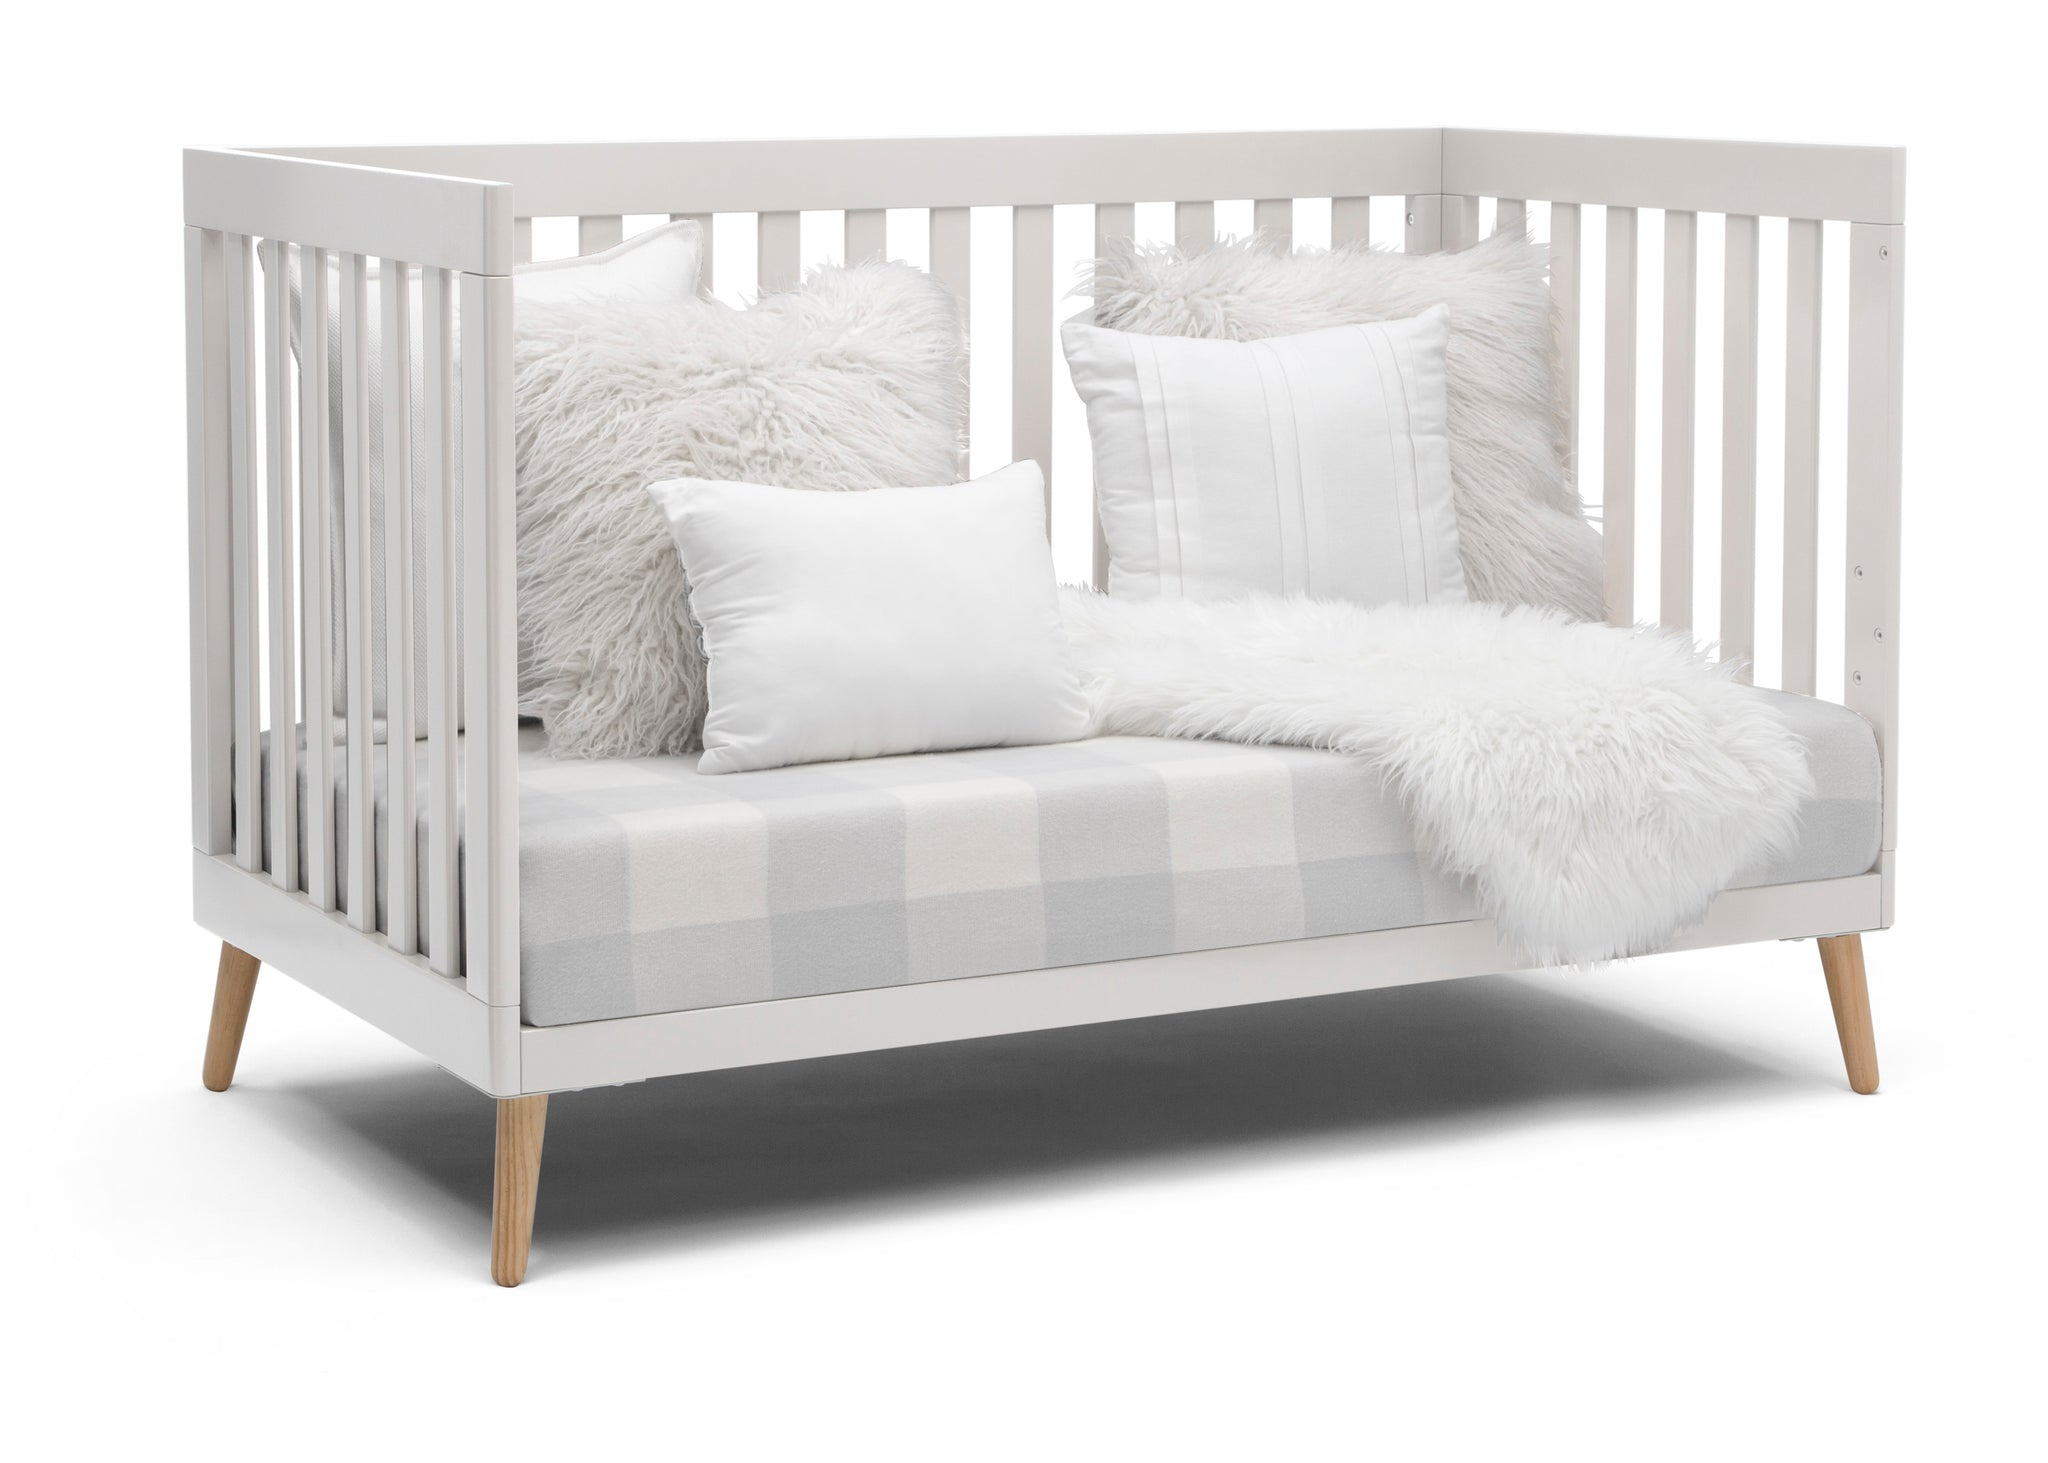 Delta Children White with Natural (123) Essex 4-in-1 Convertible Crib, Right Sofa Silo View